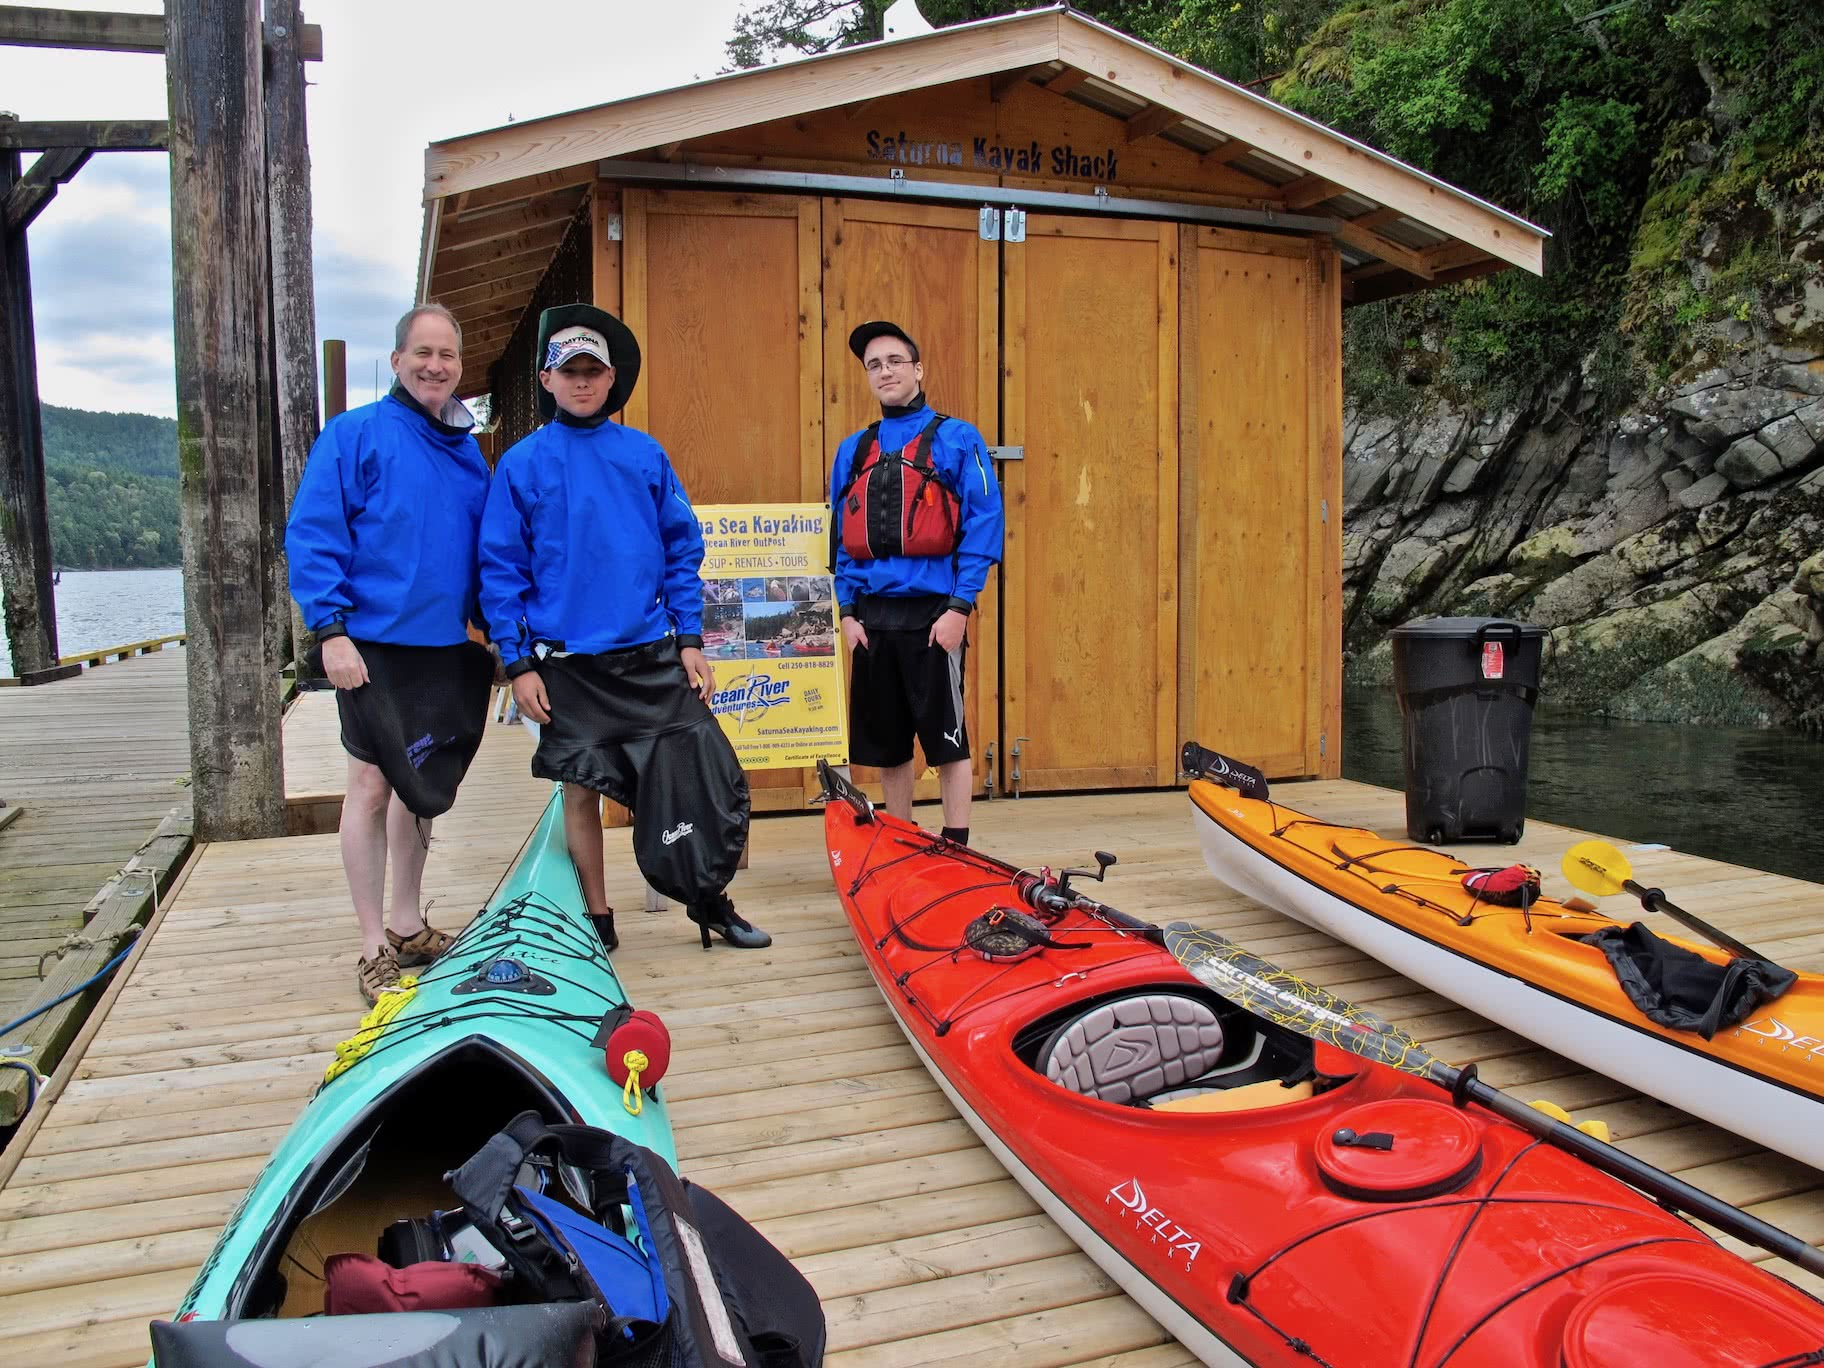 The Saturna Kayak Shack